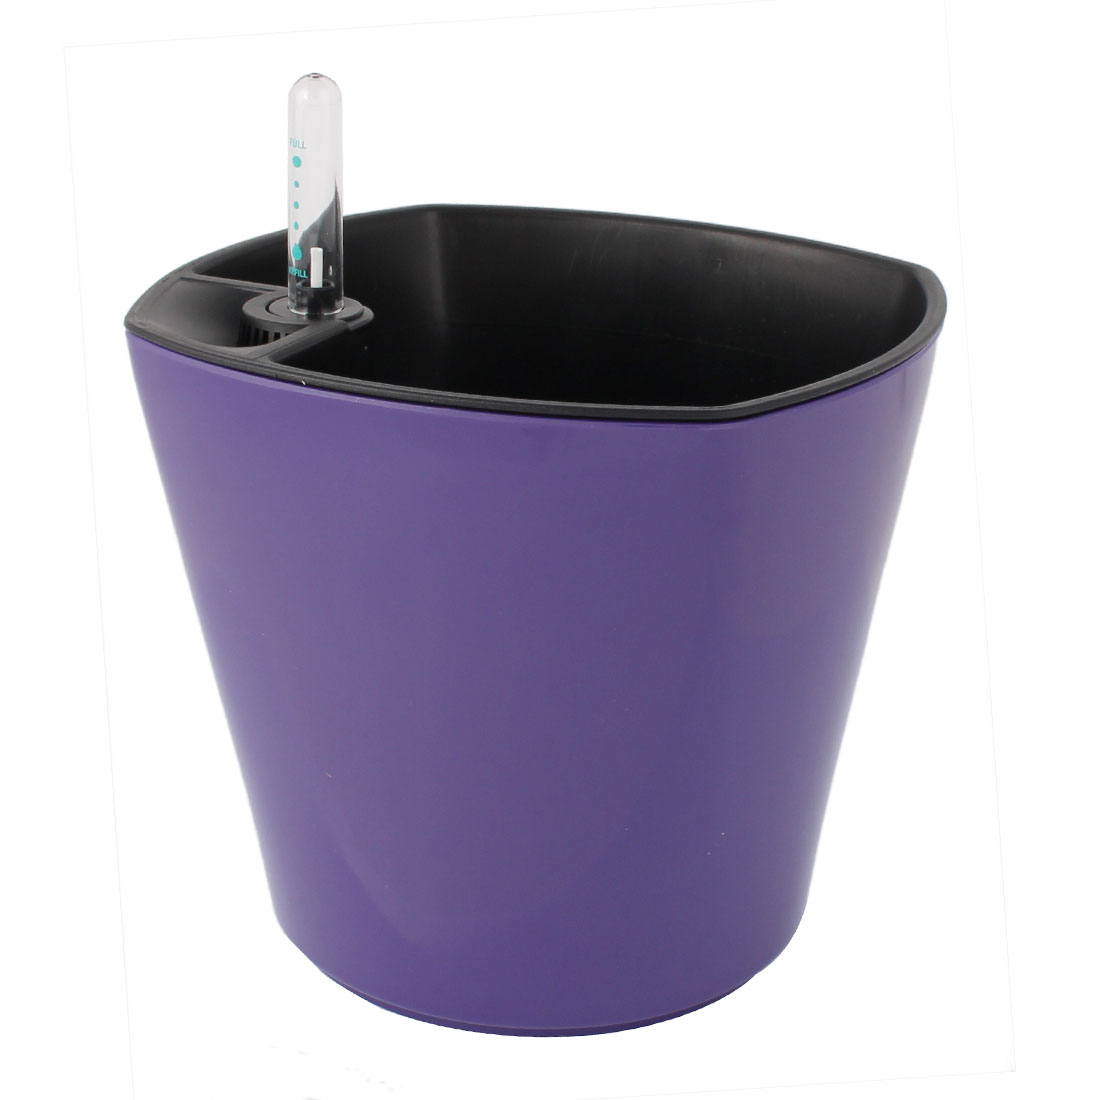 Office Plastic Self Watering Planter Flowerpot Purple w Water Level Indicator